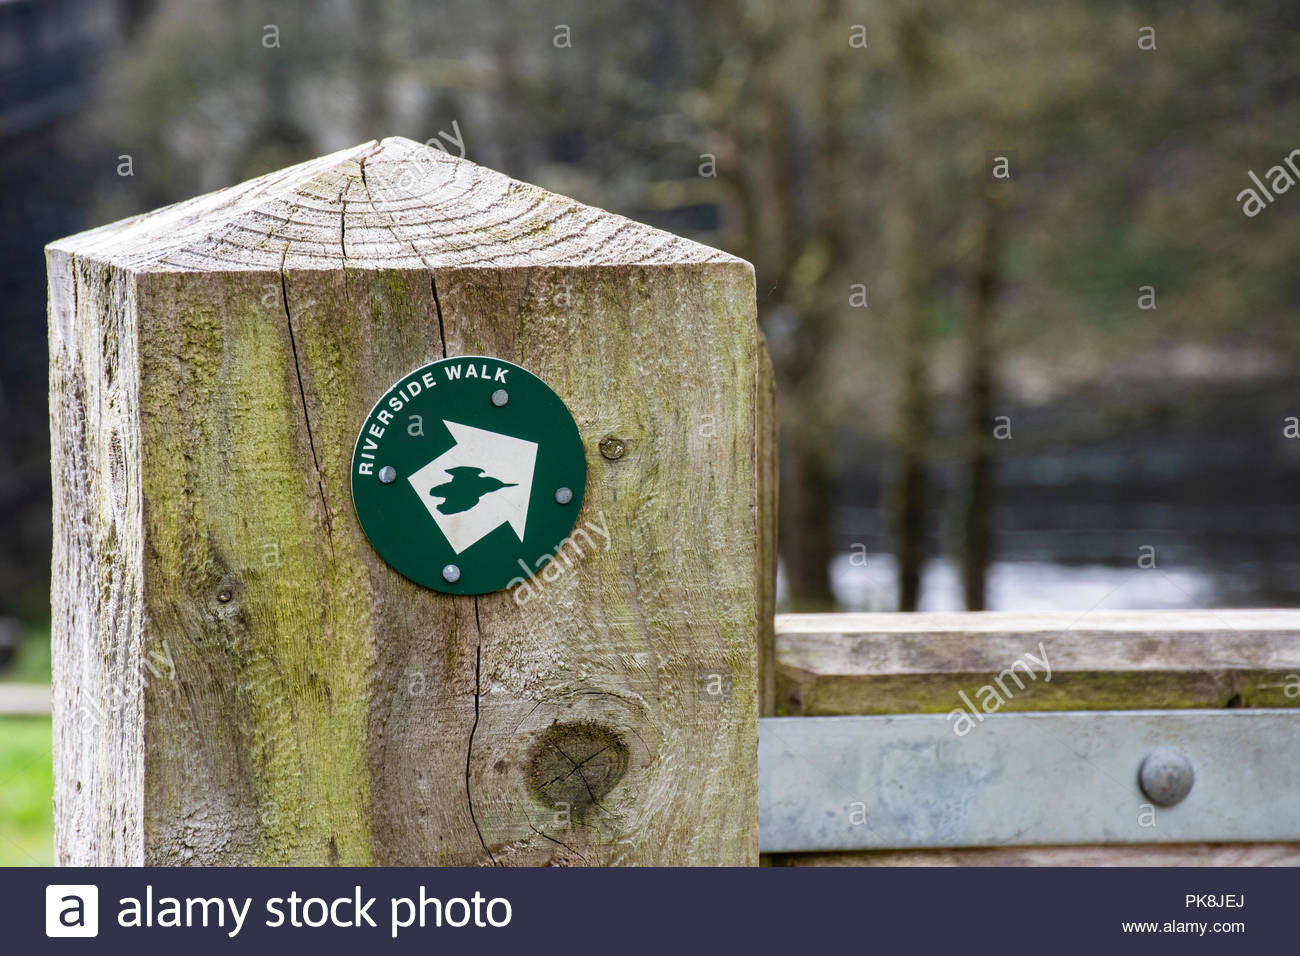 Sign for a Riverside Walk at the Crook of Lune near Lancaster, UK - Stock Image